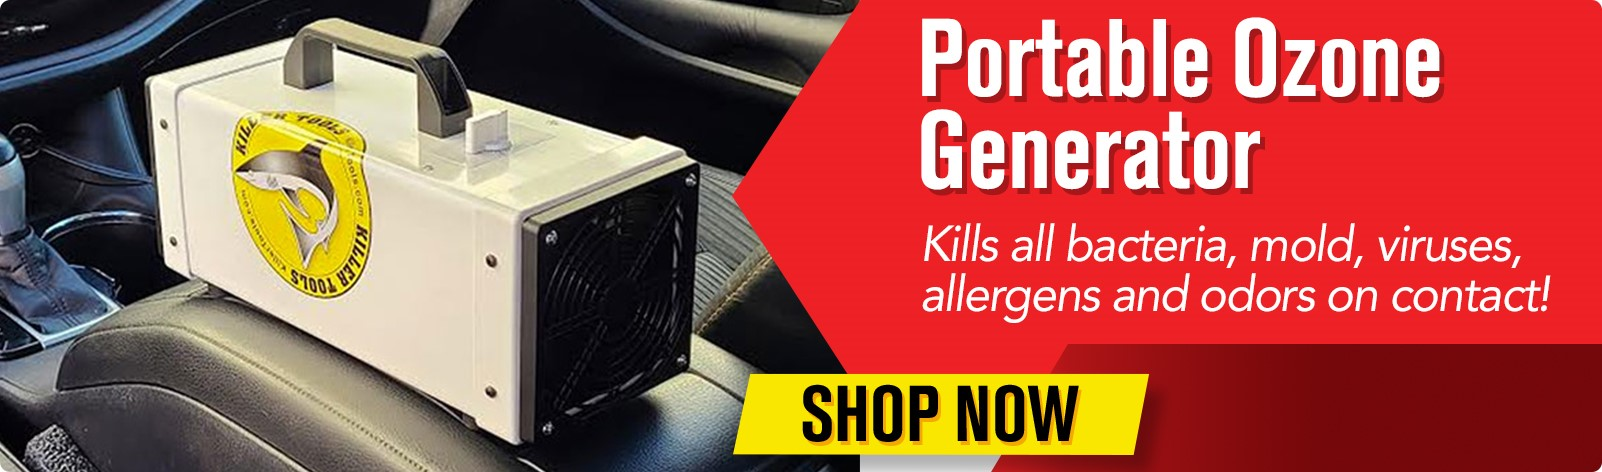 Portable Ozone Generator - kills all bacteria, mold, viruses, allergens and odors on contact!